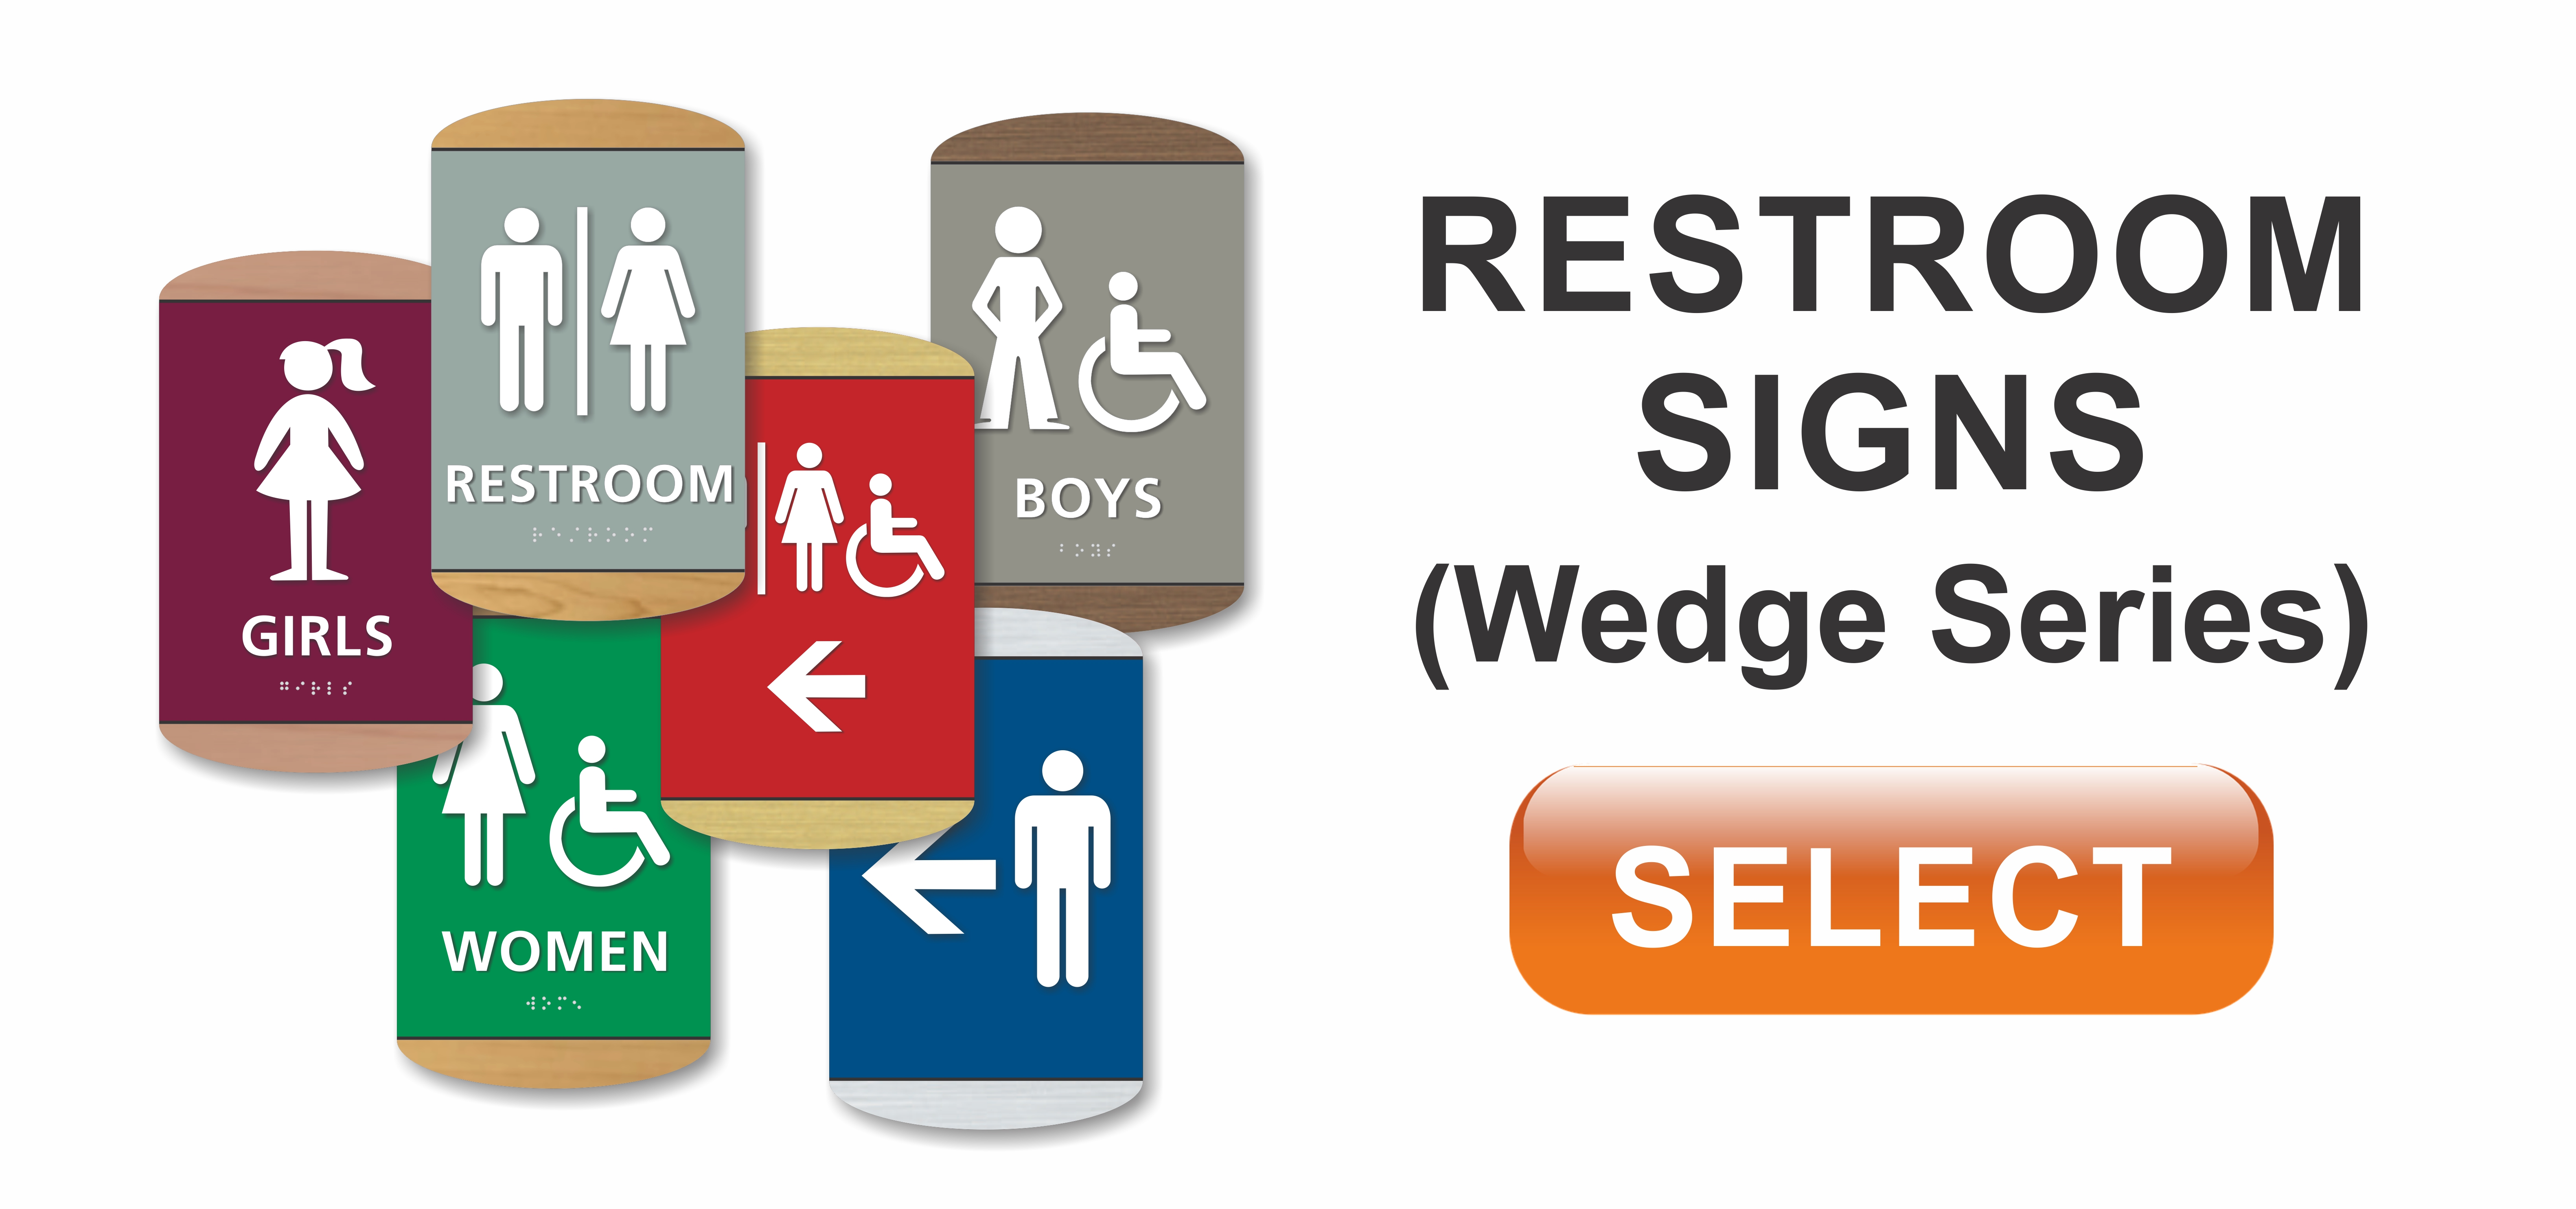 wedge series ADA braille restroom signs